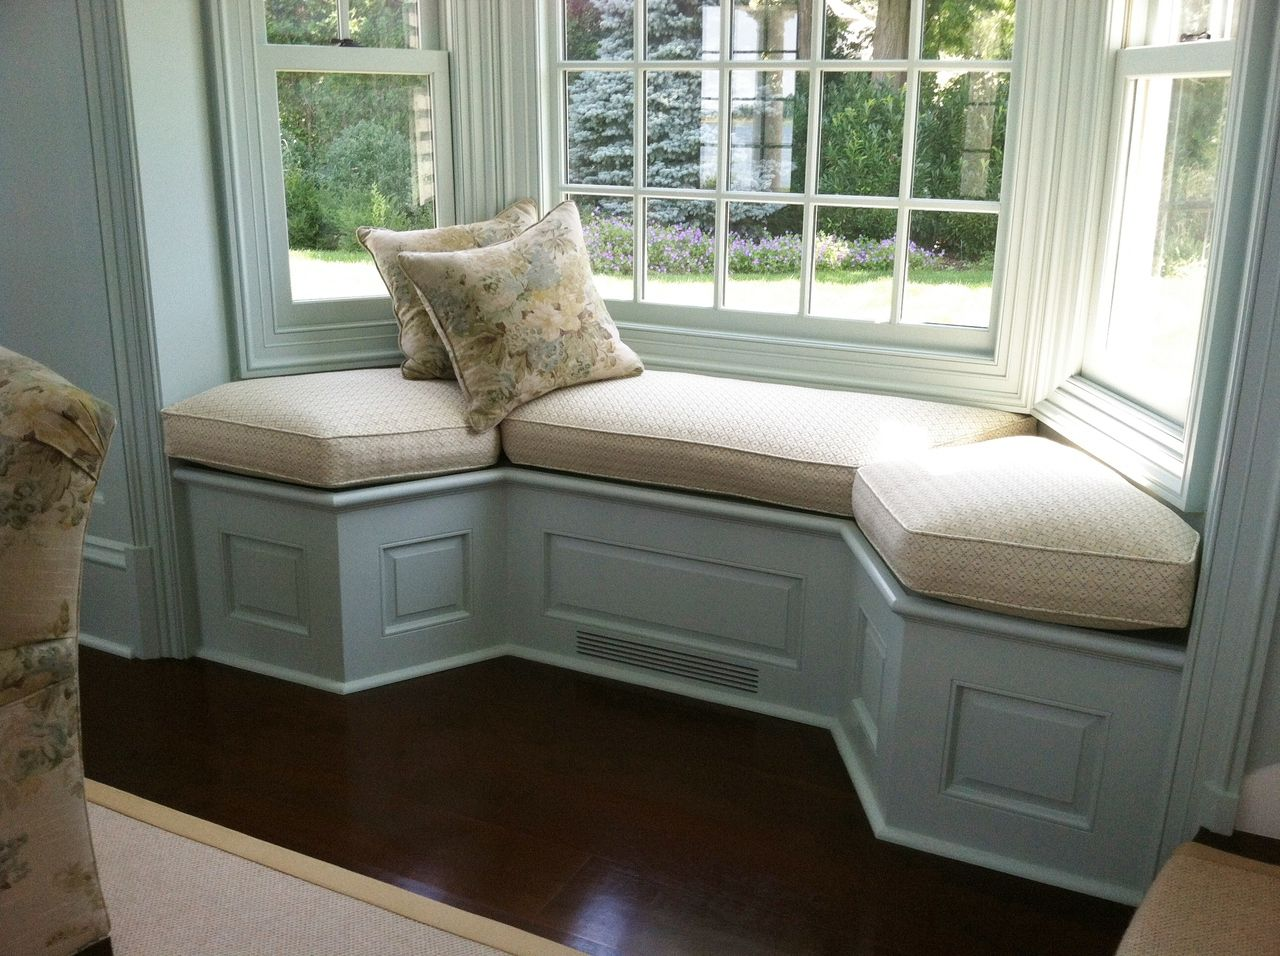 How to make bay window cushions - Best 25 Window Seat Cushions Ideas On Pinterest Large Seat Covers Cottage Seat Pads And Cottage Seat Covers